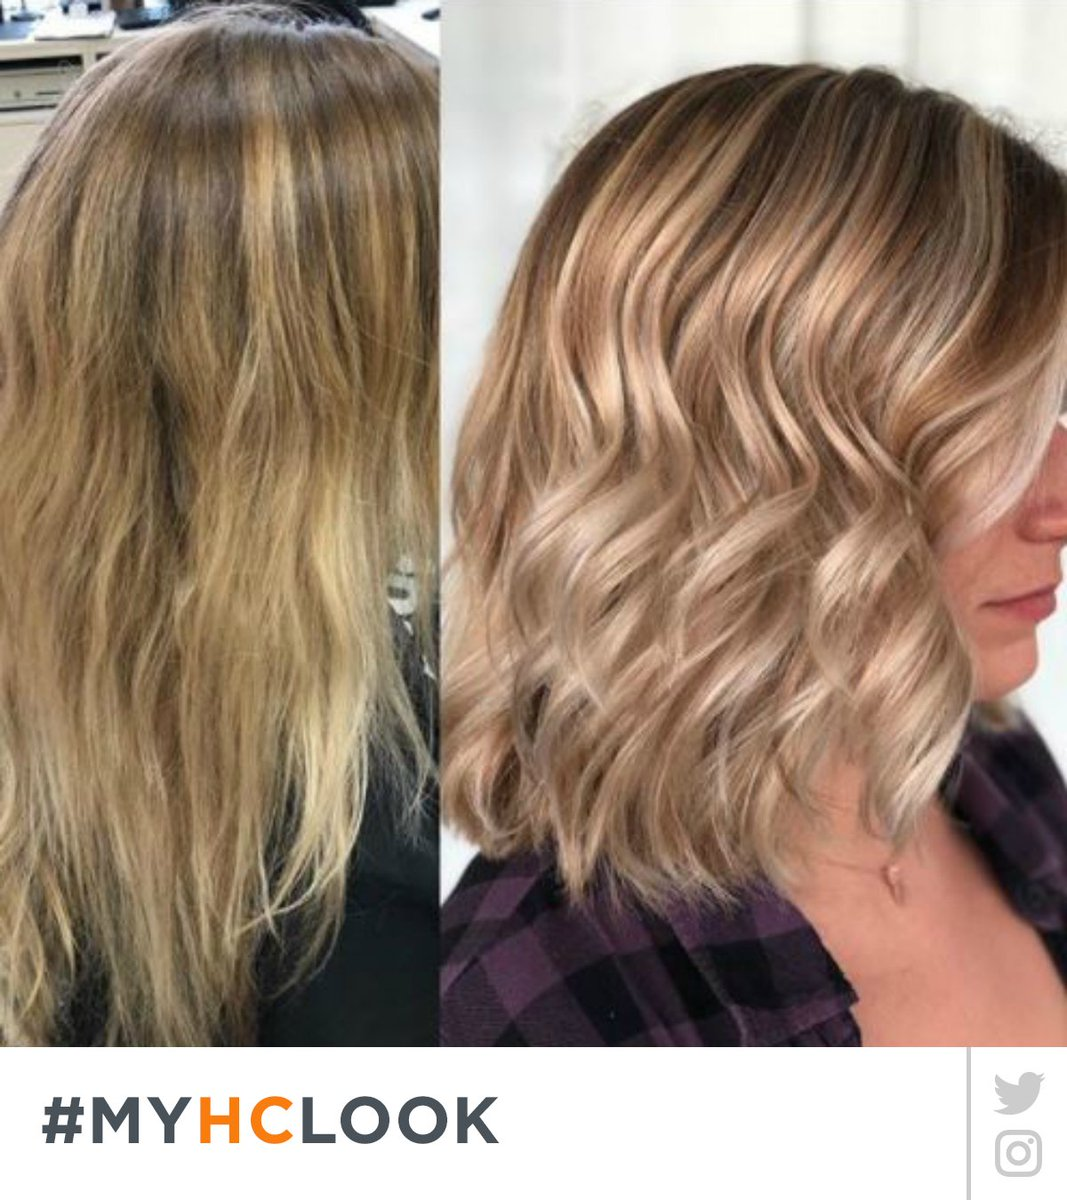 Hair Cuttery On Twitter Transformationtuesday By Hc Stylist